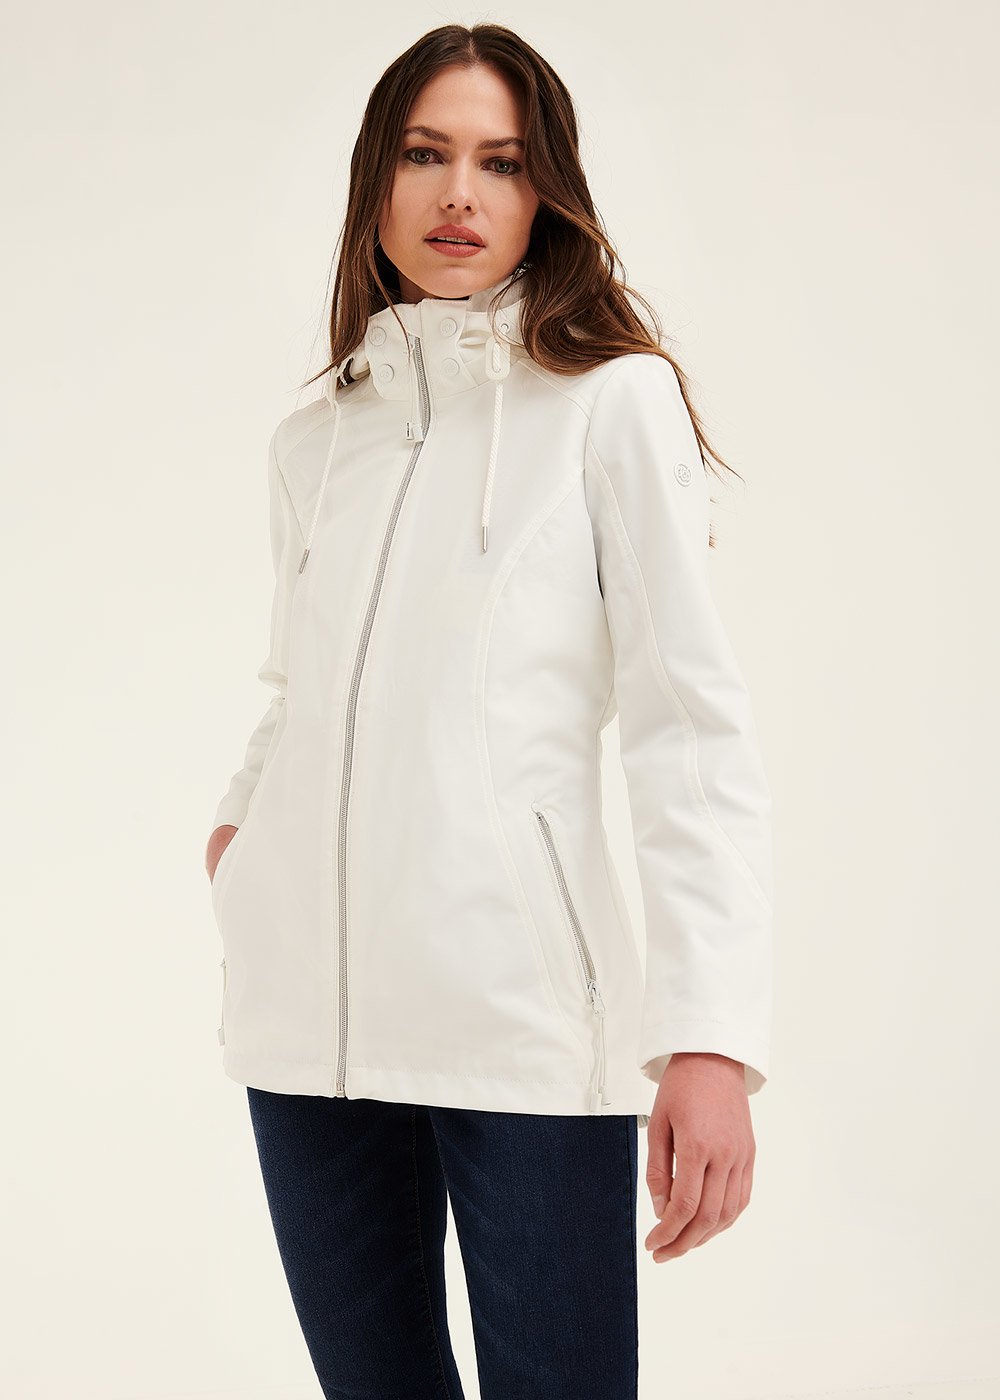 George jacket in technical fabric - White - Woman